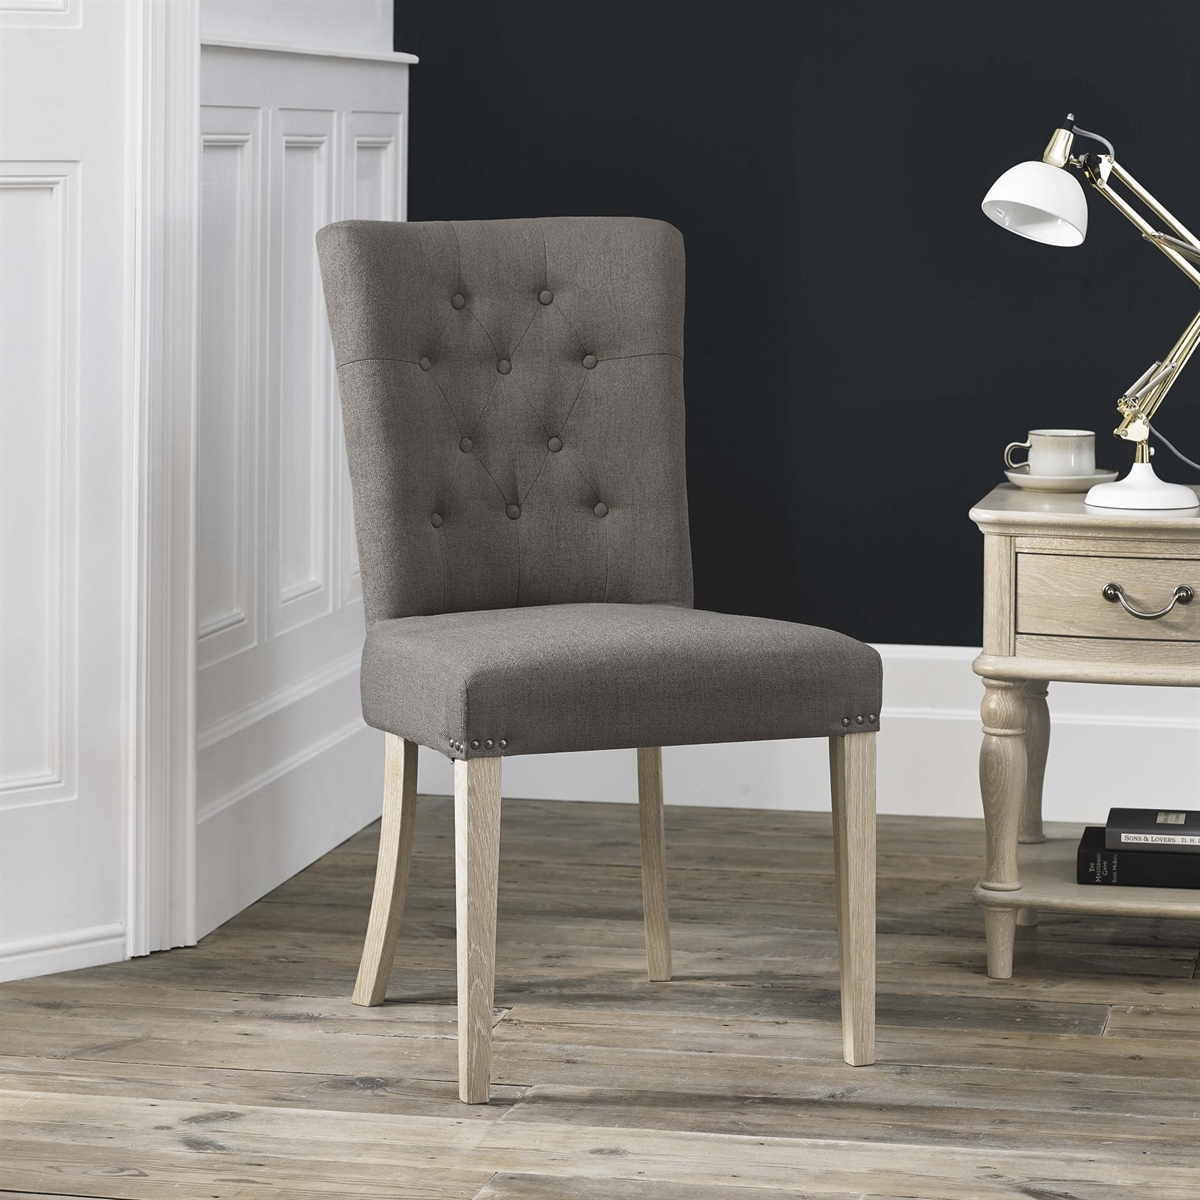 Bordeaux Chair - Upholstered - Titanium Fabric